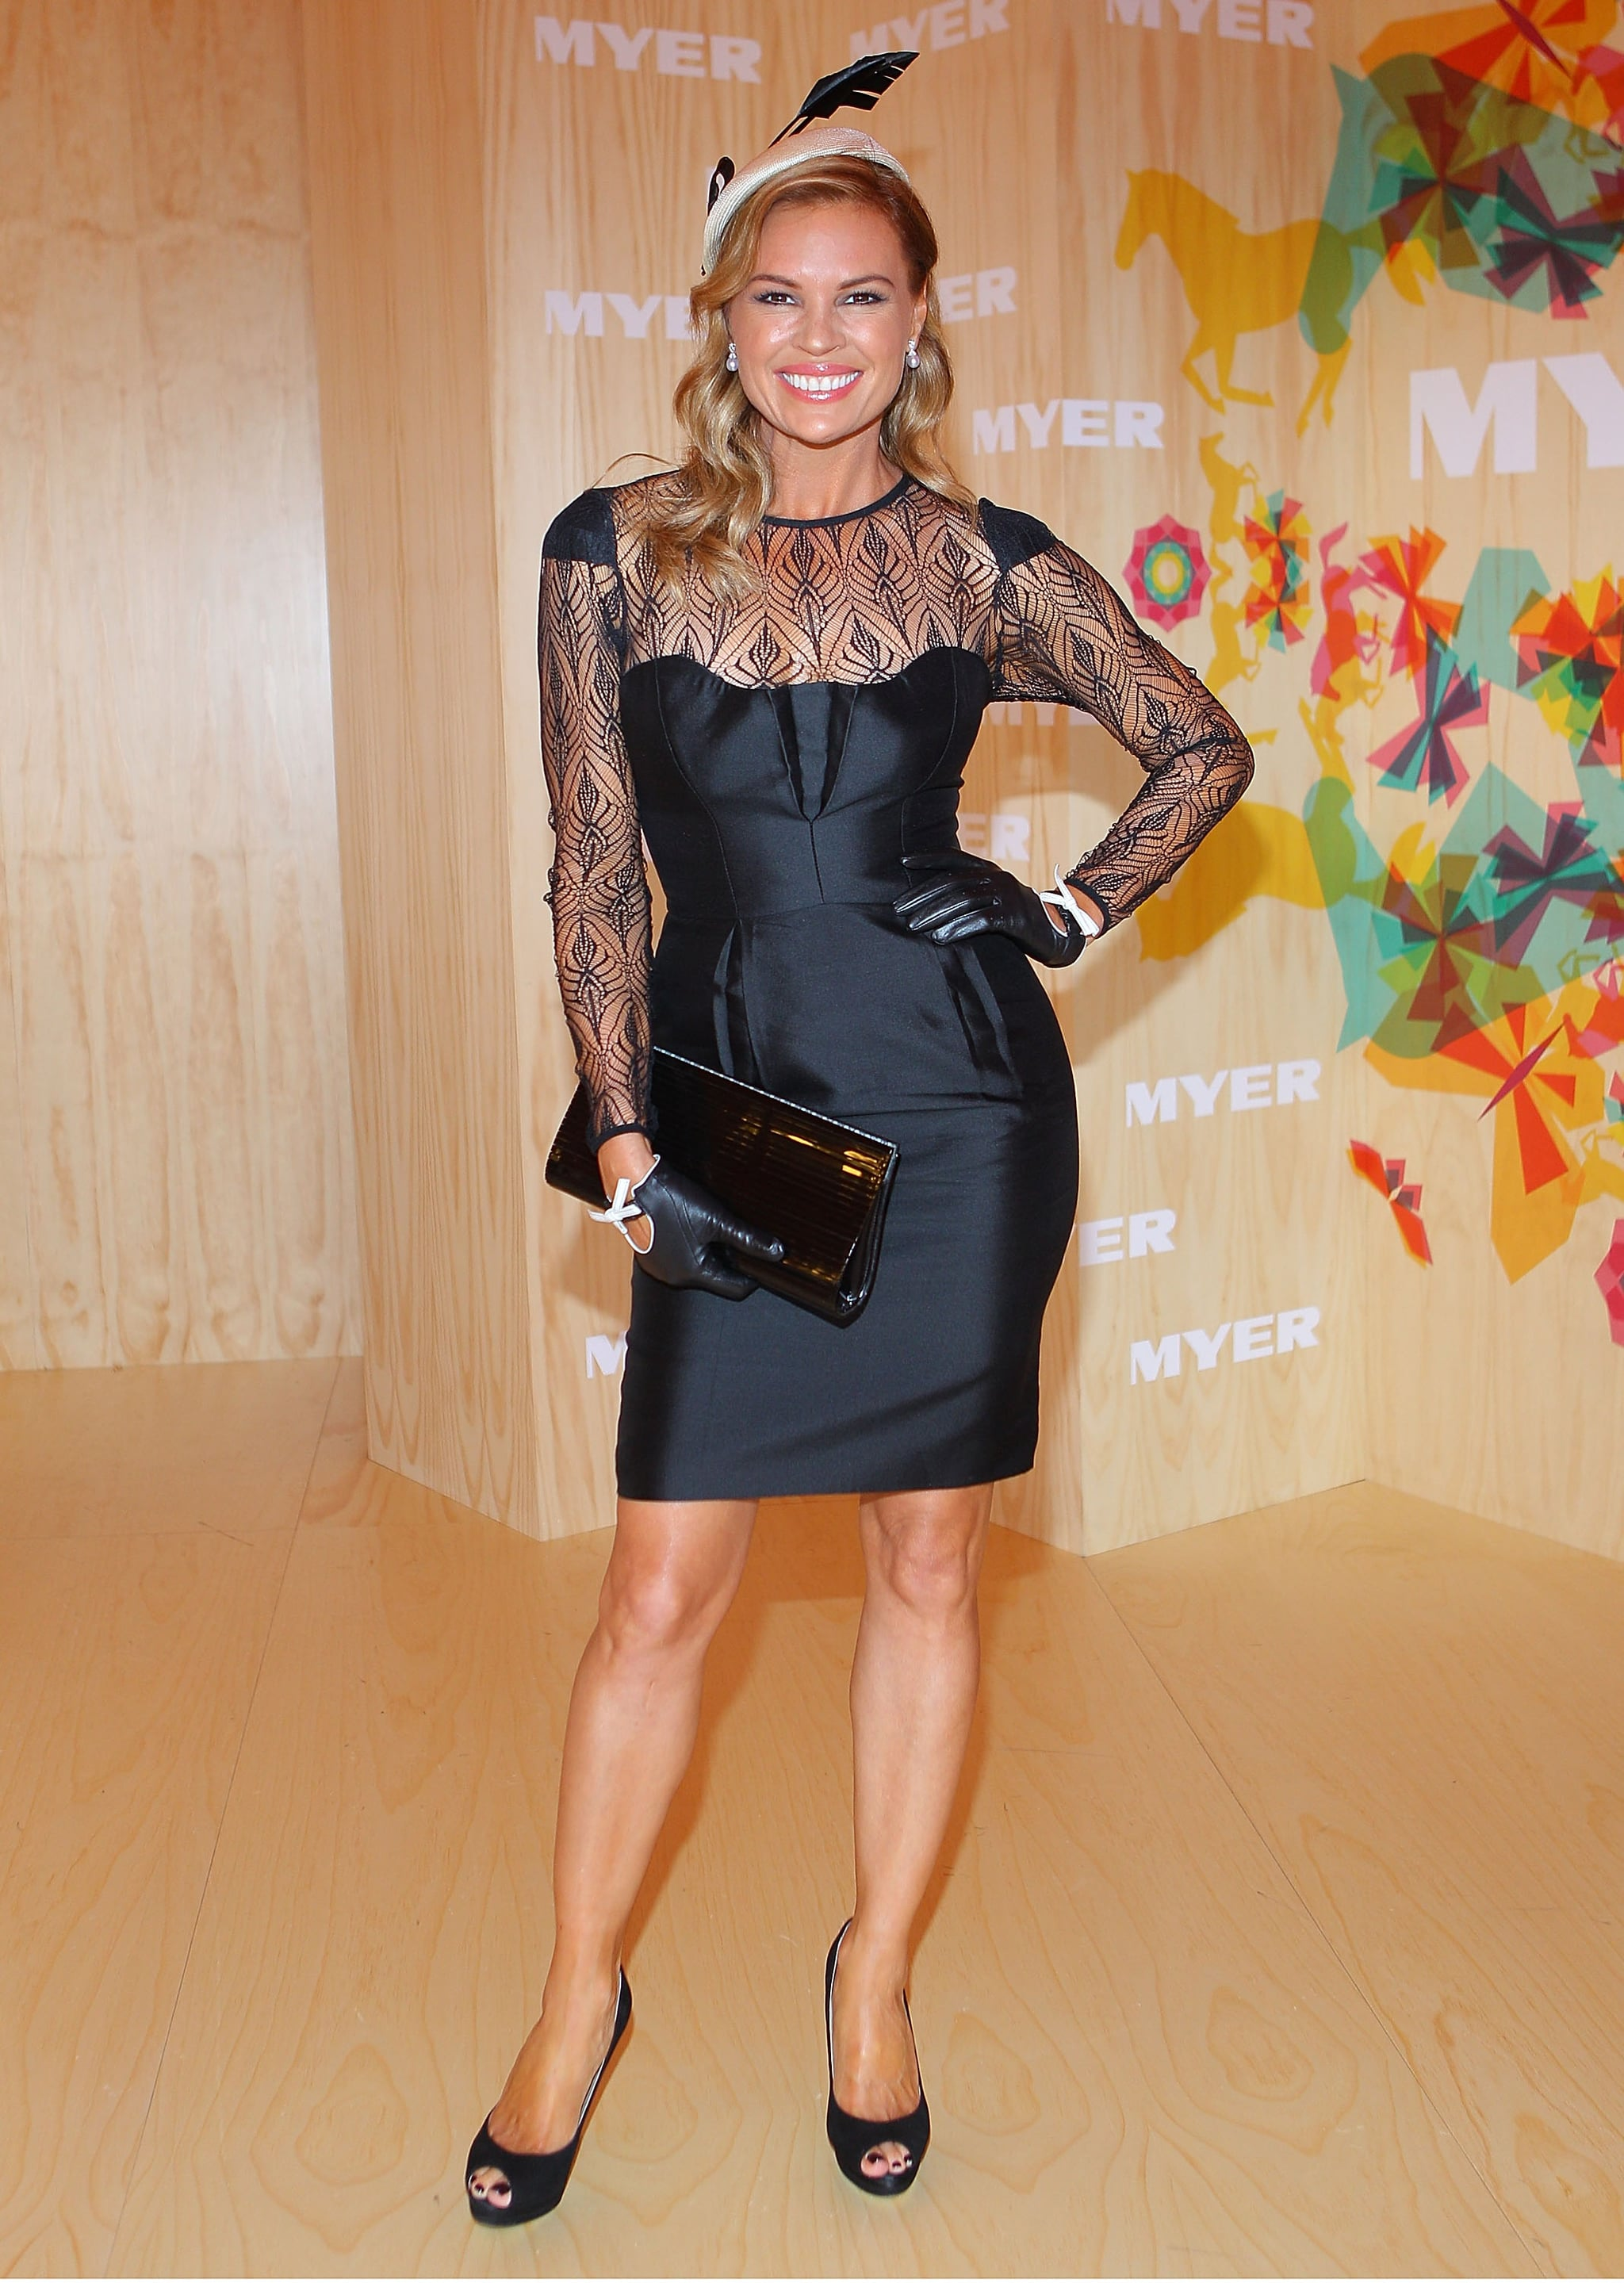 Sonia Kruger radiates old school glamour